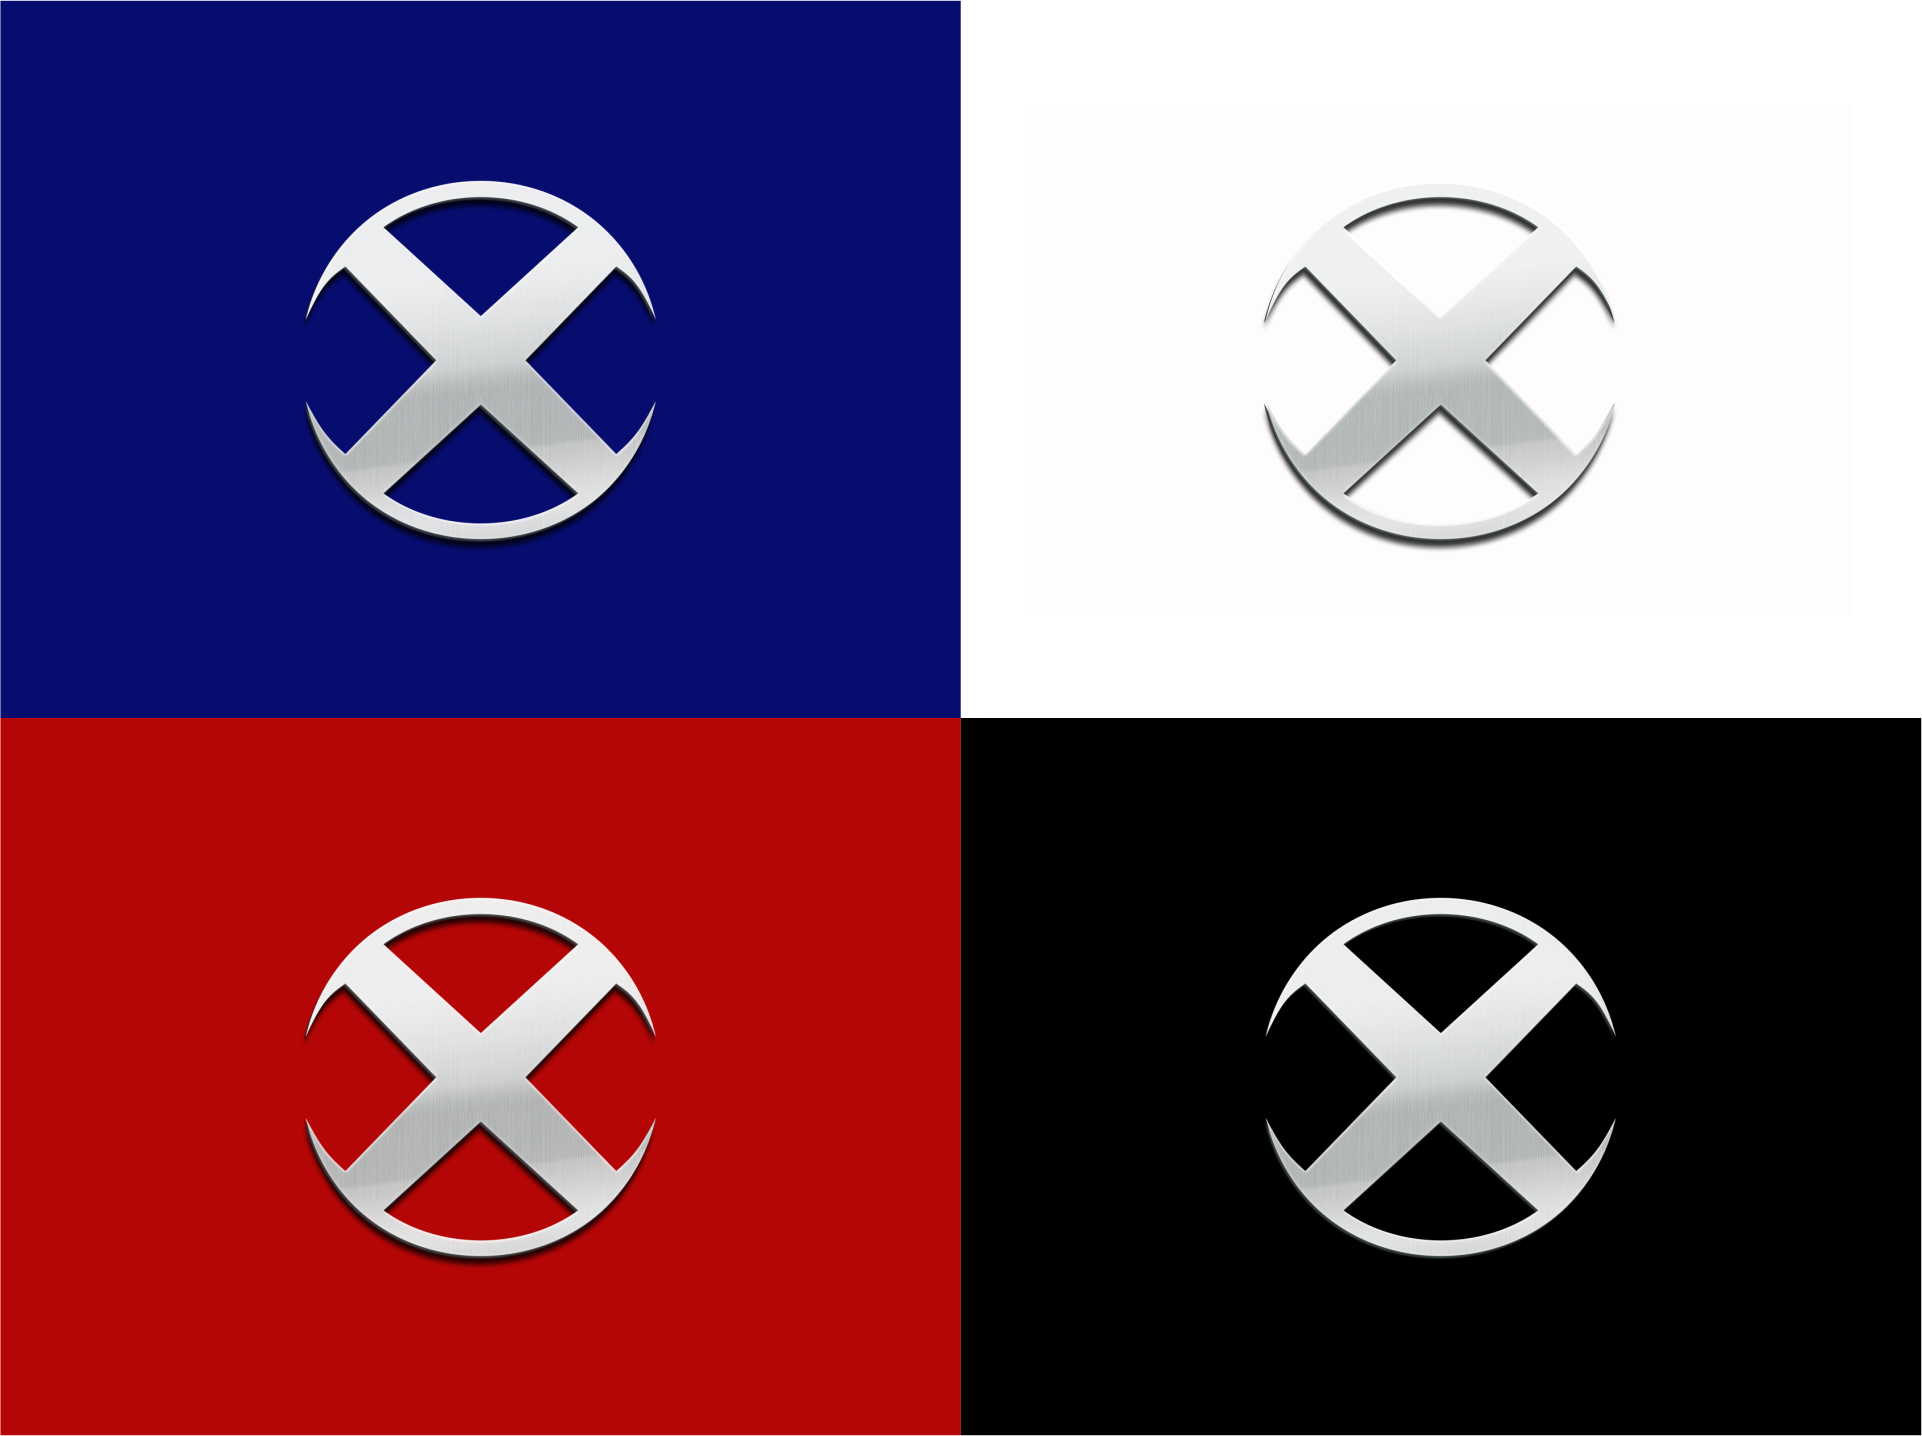 Can you create a super-hero logo using the letter X